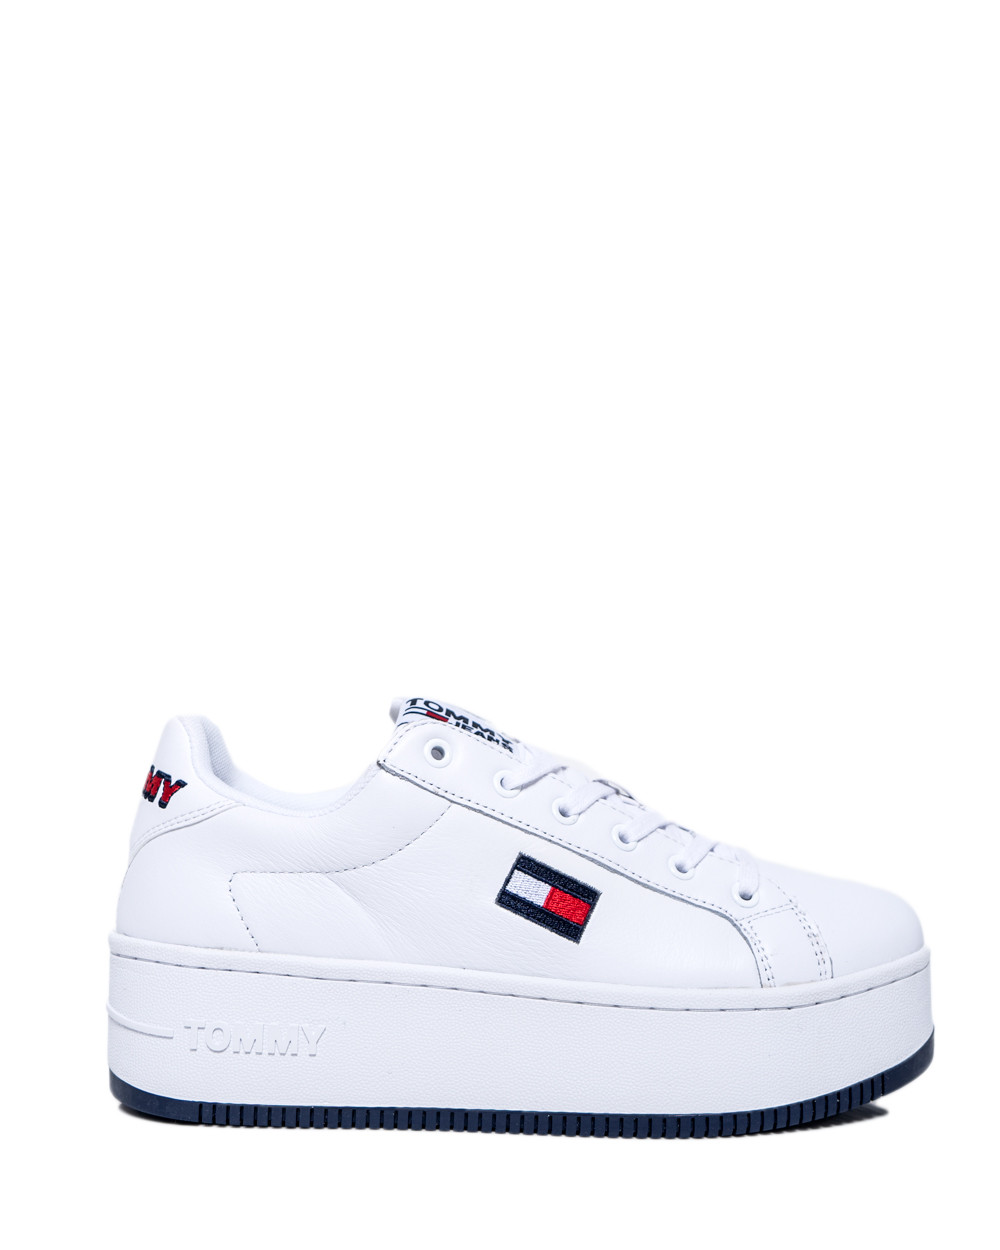 tommy hilfigerMarchio: Tommy Hilfiger; Genere: Donna; Tipologia: